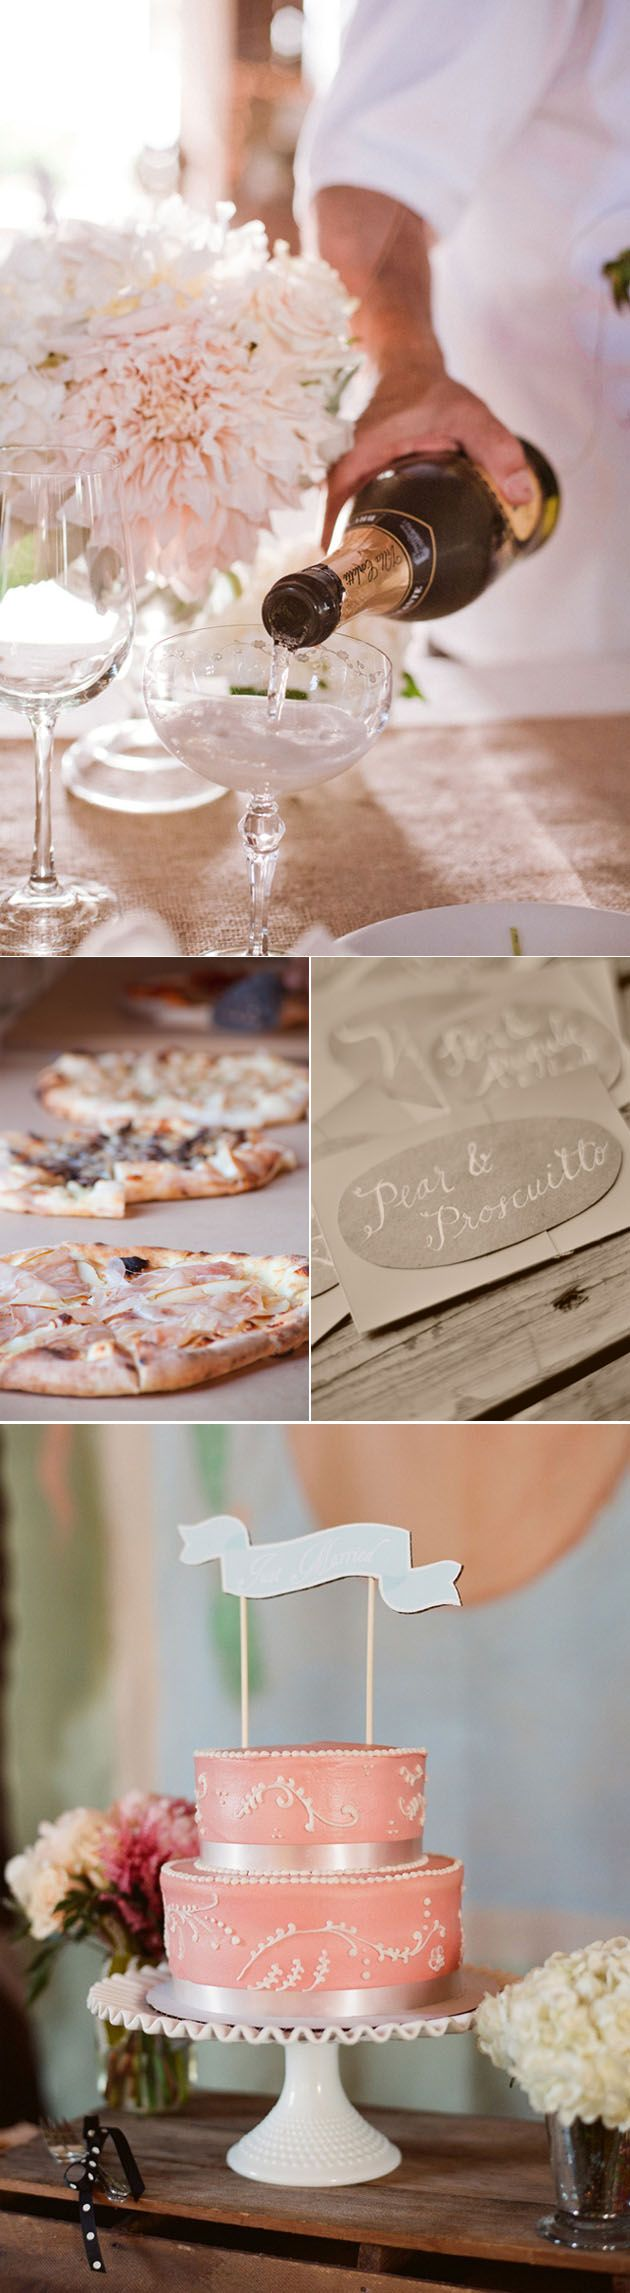 31 best cake and punch wedding images on pinterest marriage